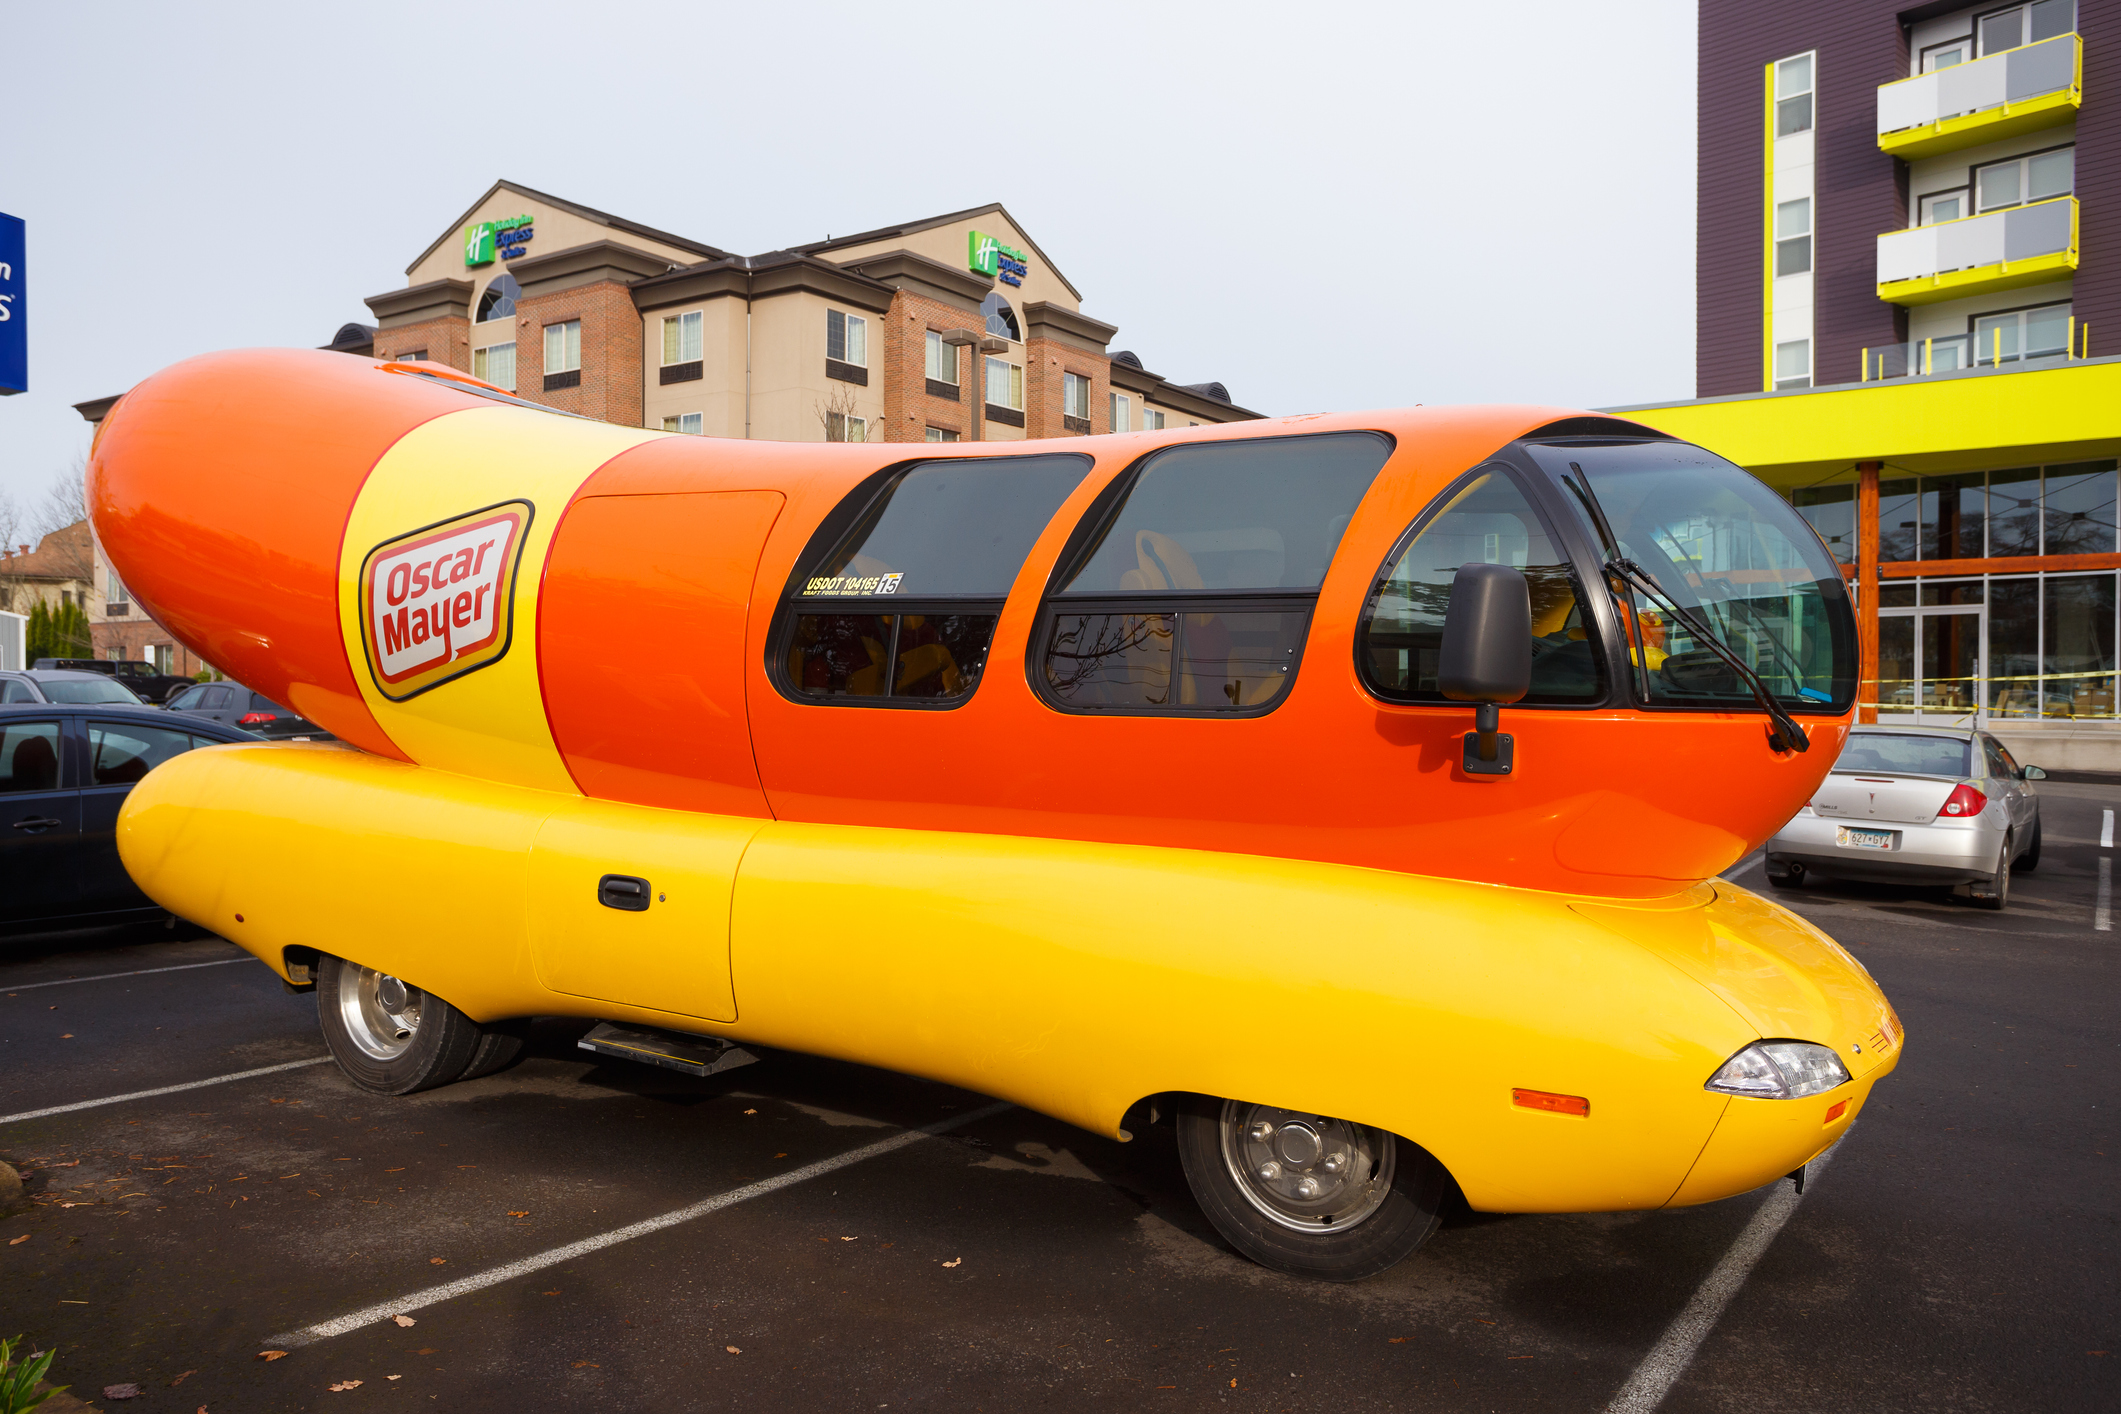 Oscar Mayer accepting applications for Wienermobile drivers